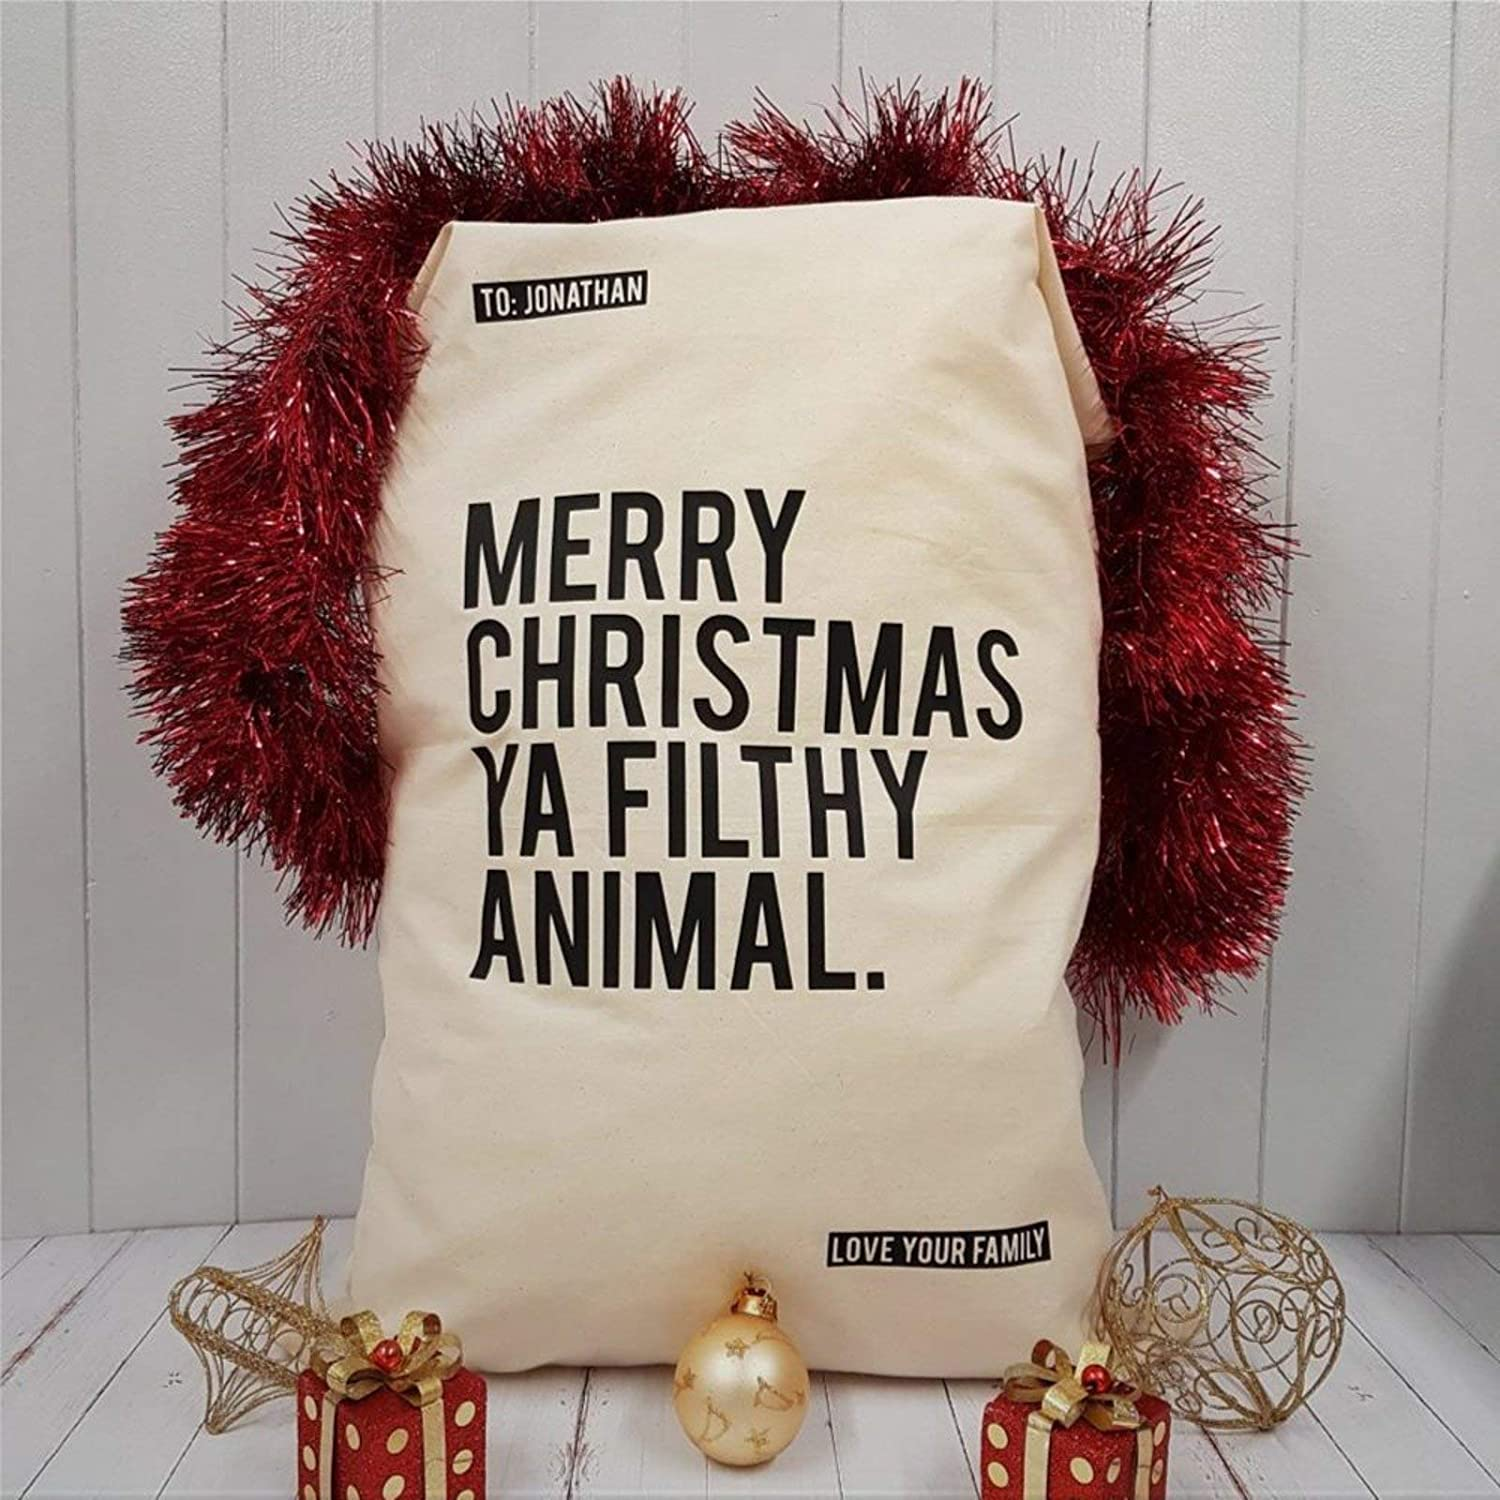 DONL9BAUER Christmas Drawstring Bag Personalised Home Alone Santa Sack Stocking Wrapping Gift Bags Xmas Goodie Bags Lager Size Sack for Birthday Christmas Party